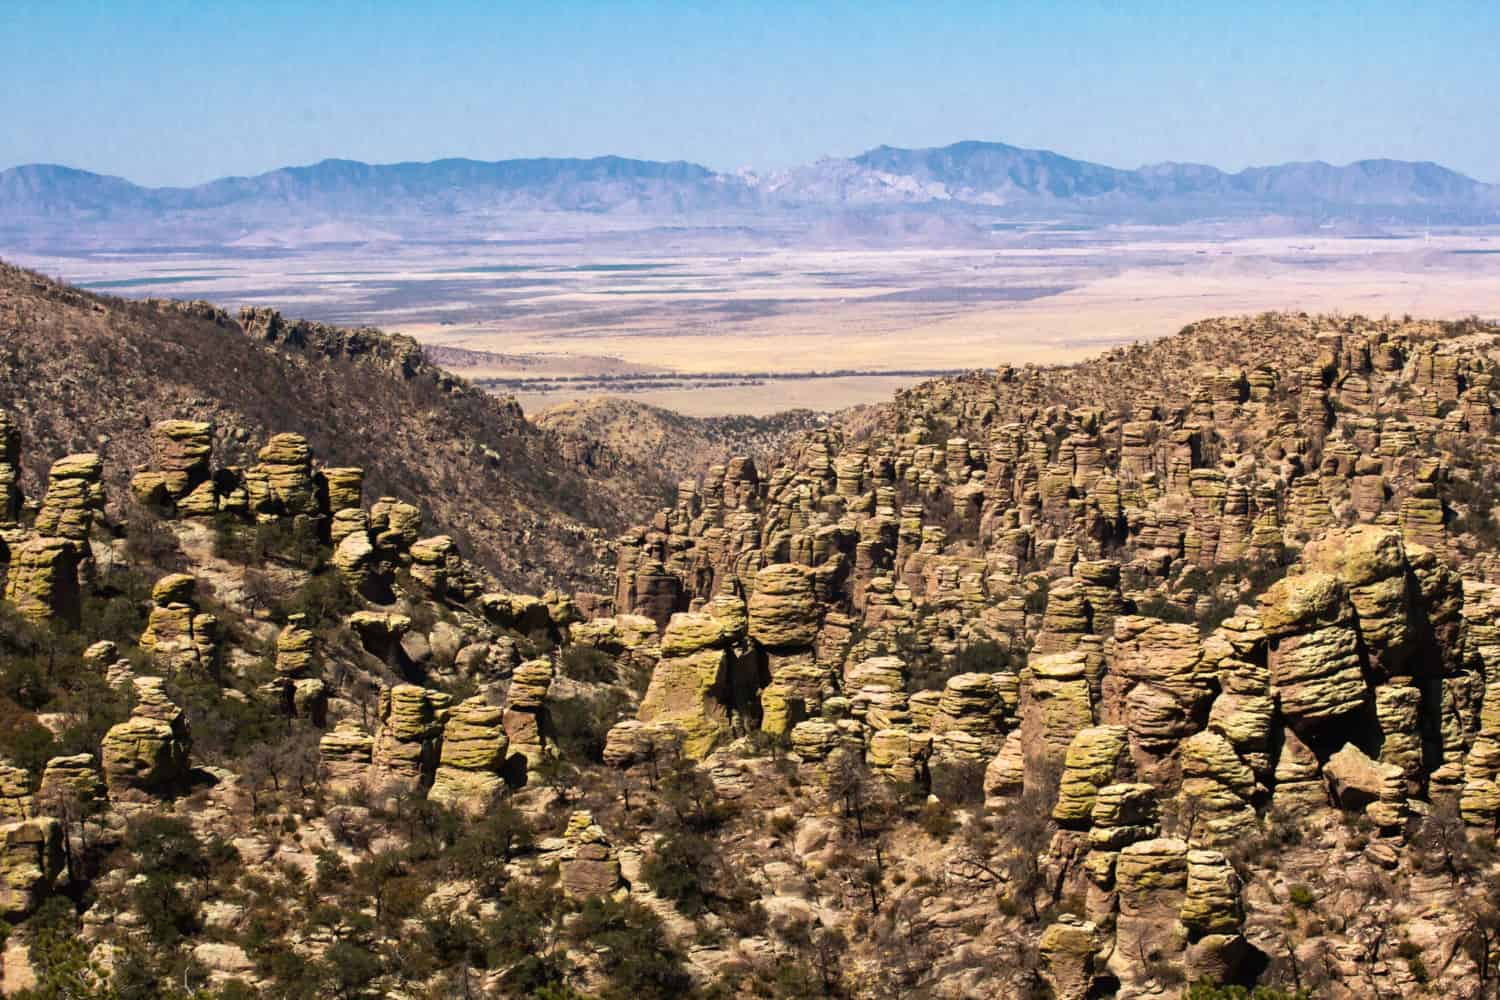 Rock formations in Chiricahua National Monument, Arizona